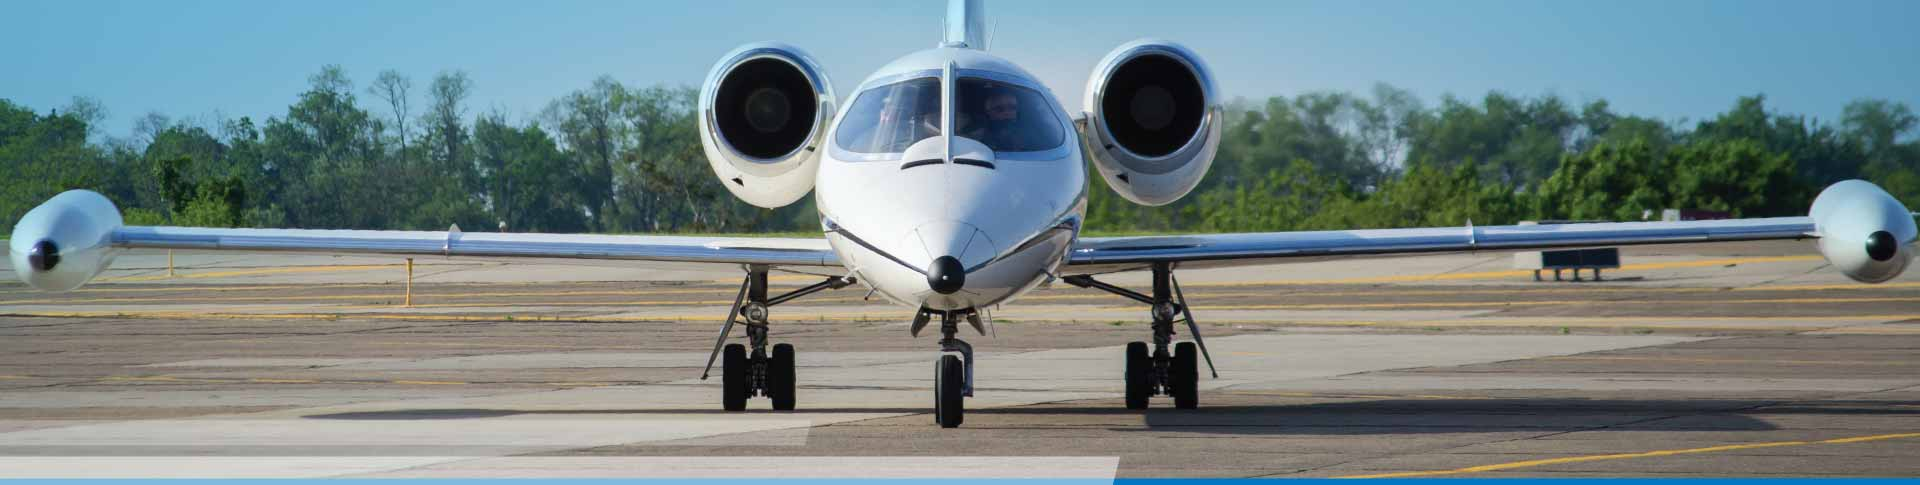 PIA Aircraft - Learjet